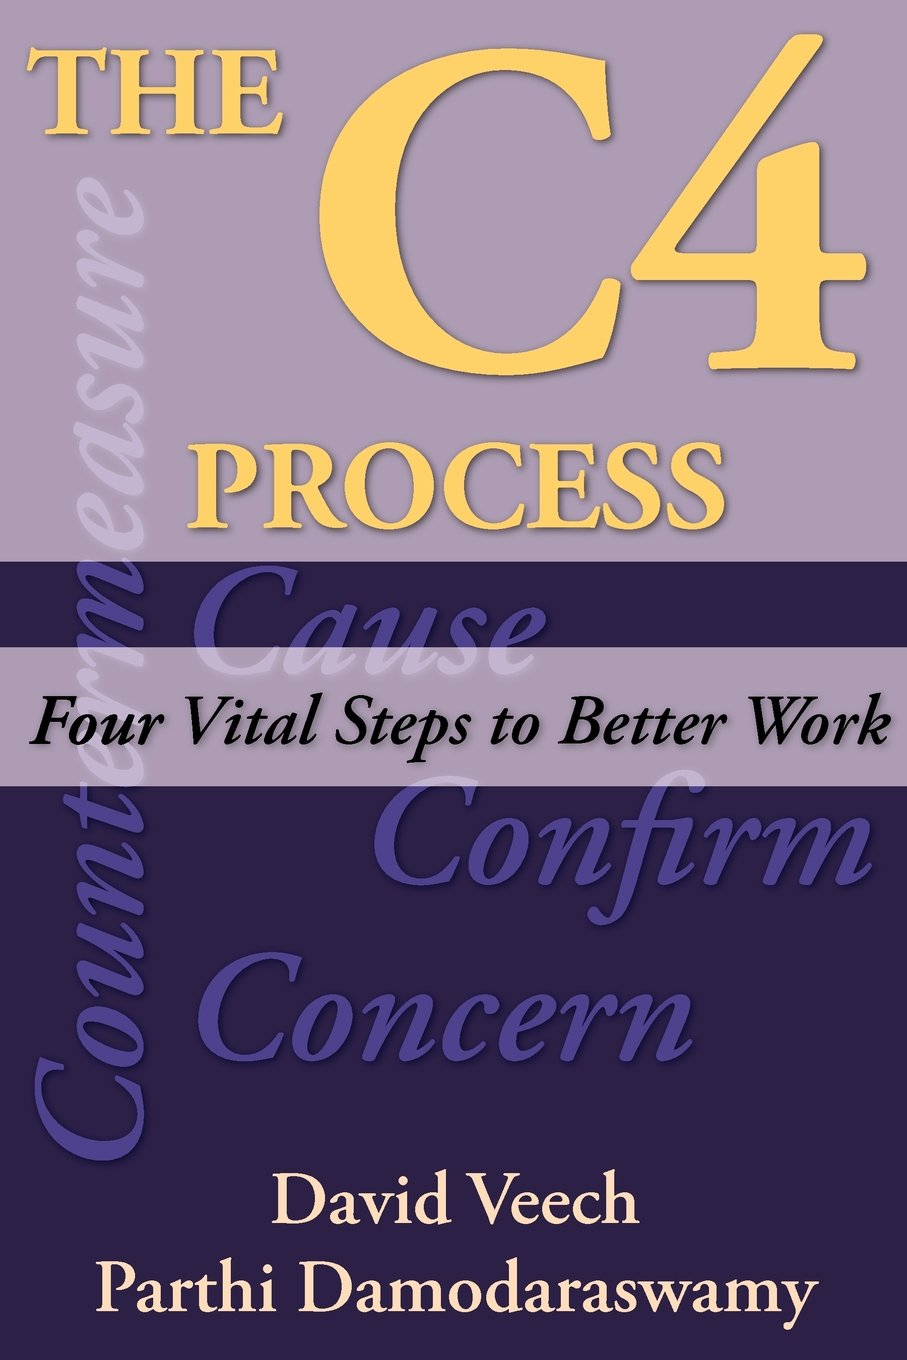 The C4 Process: Four Vital Steps to Better Work PDF